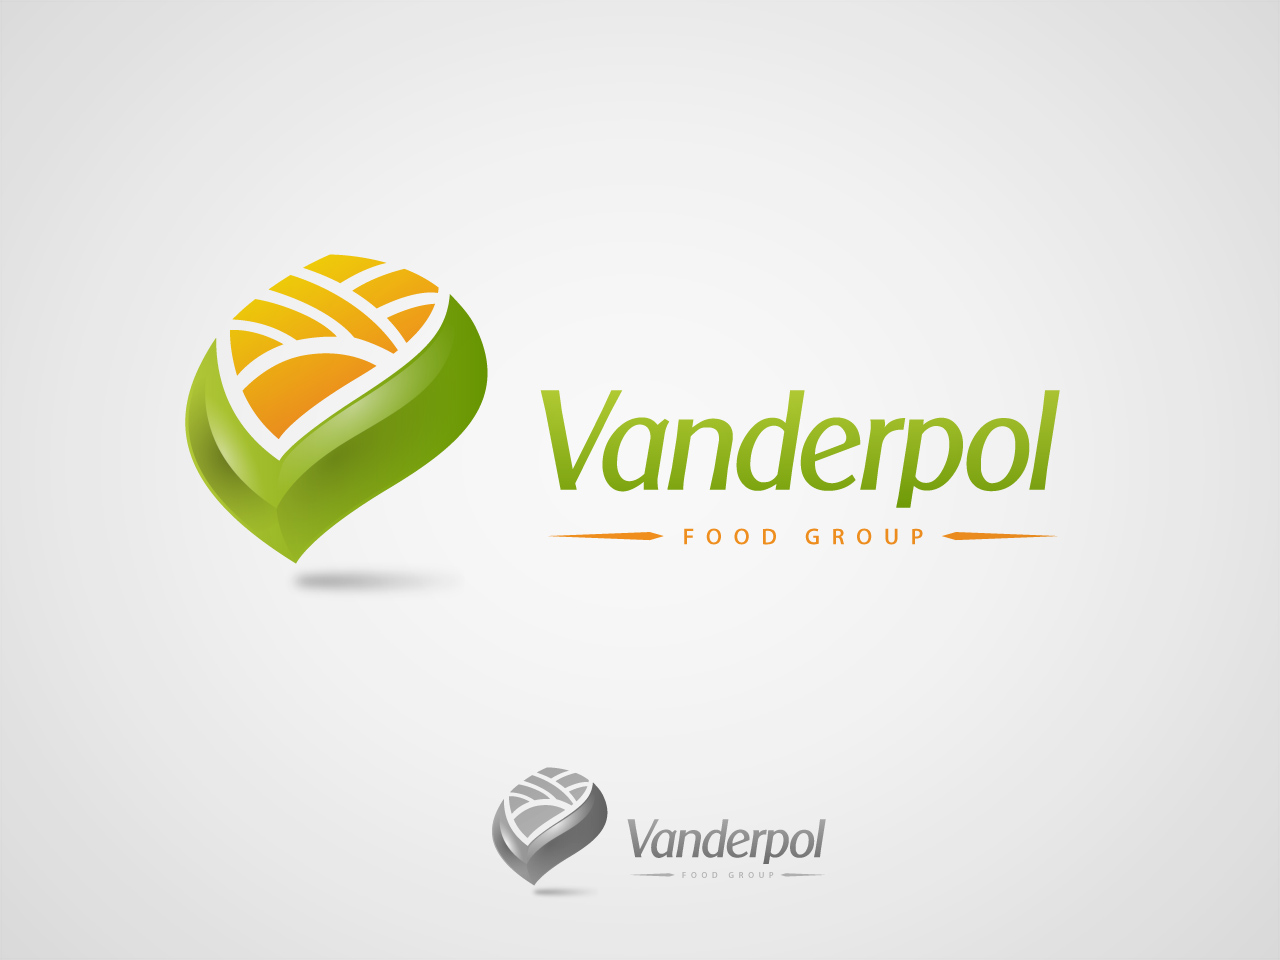 Logo Design by jpbituin - Entry No. 2 in the Logo Design Contest Creative Logo Design for Vanderpol Food Group.